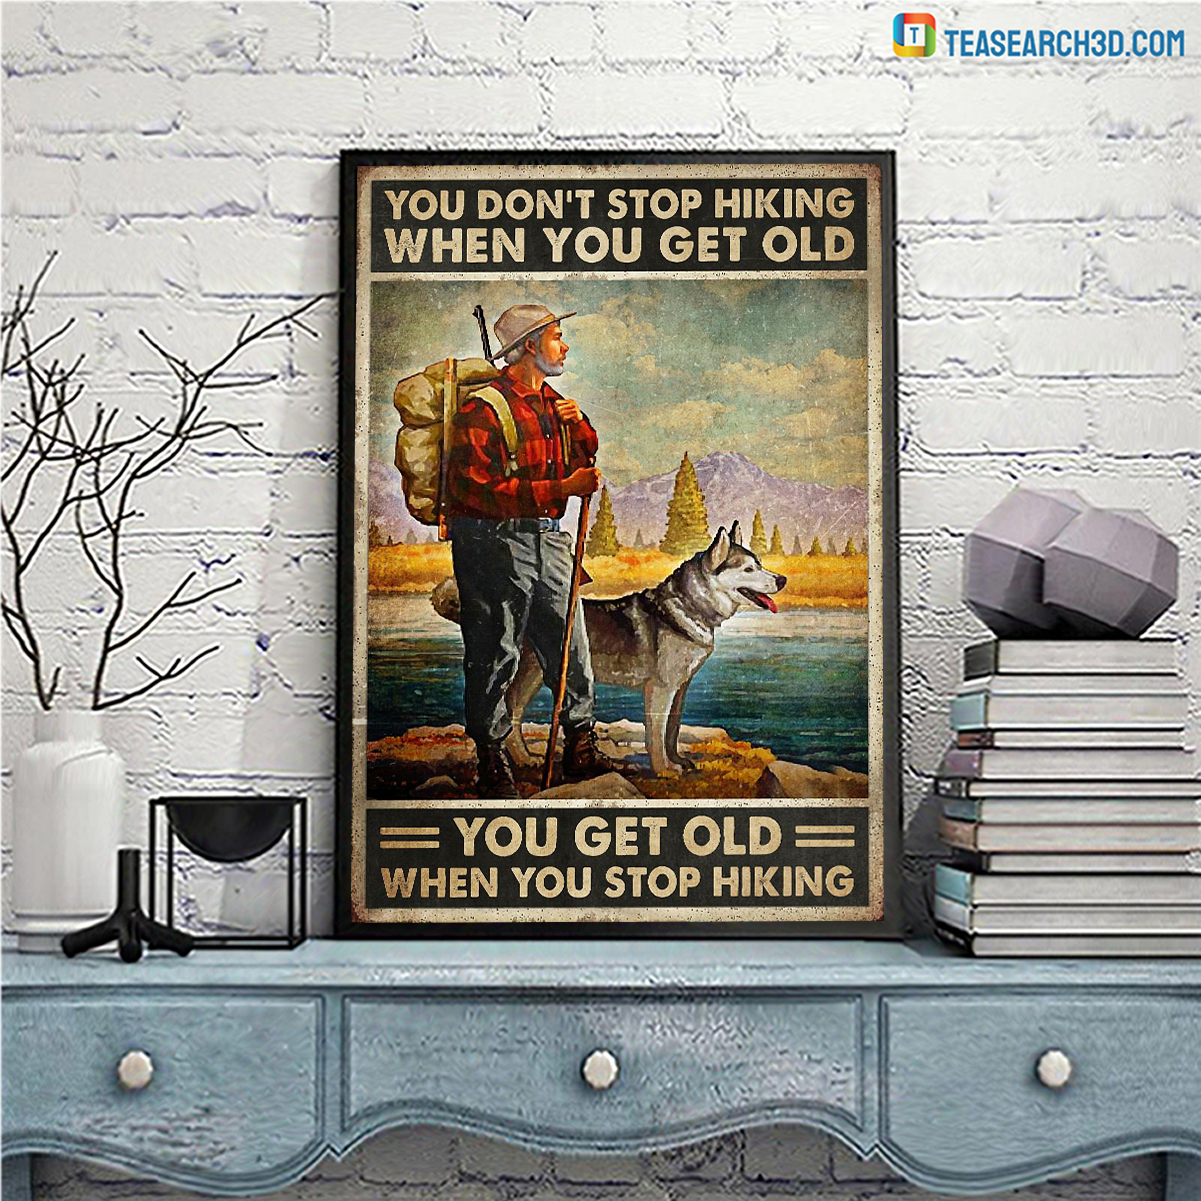 Husky dog you don't stop hiking when you get old poster